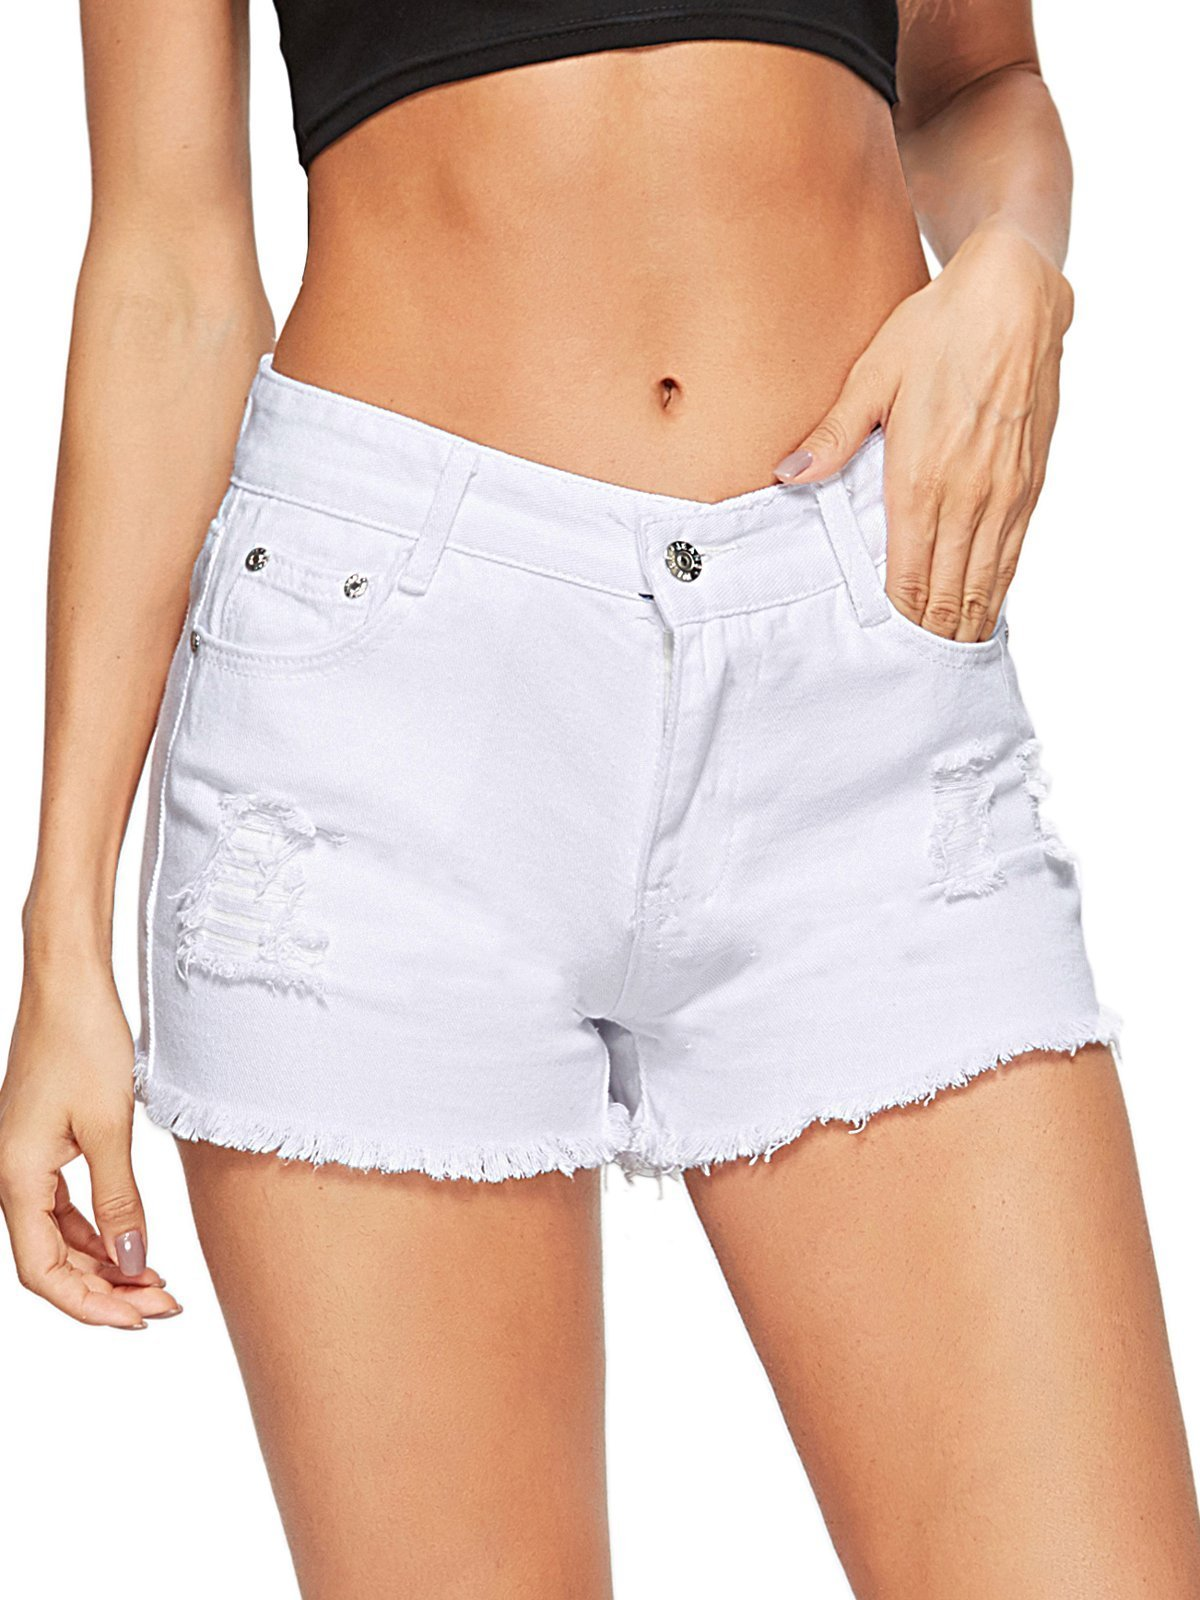 Beluring Sexy High Rise Pockets Denim Jeans Shorts for Women White Size 10